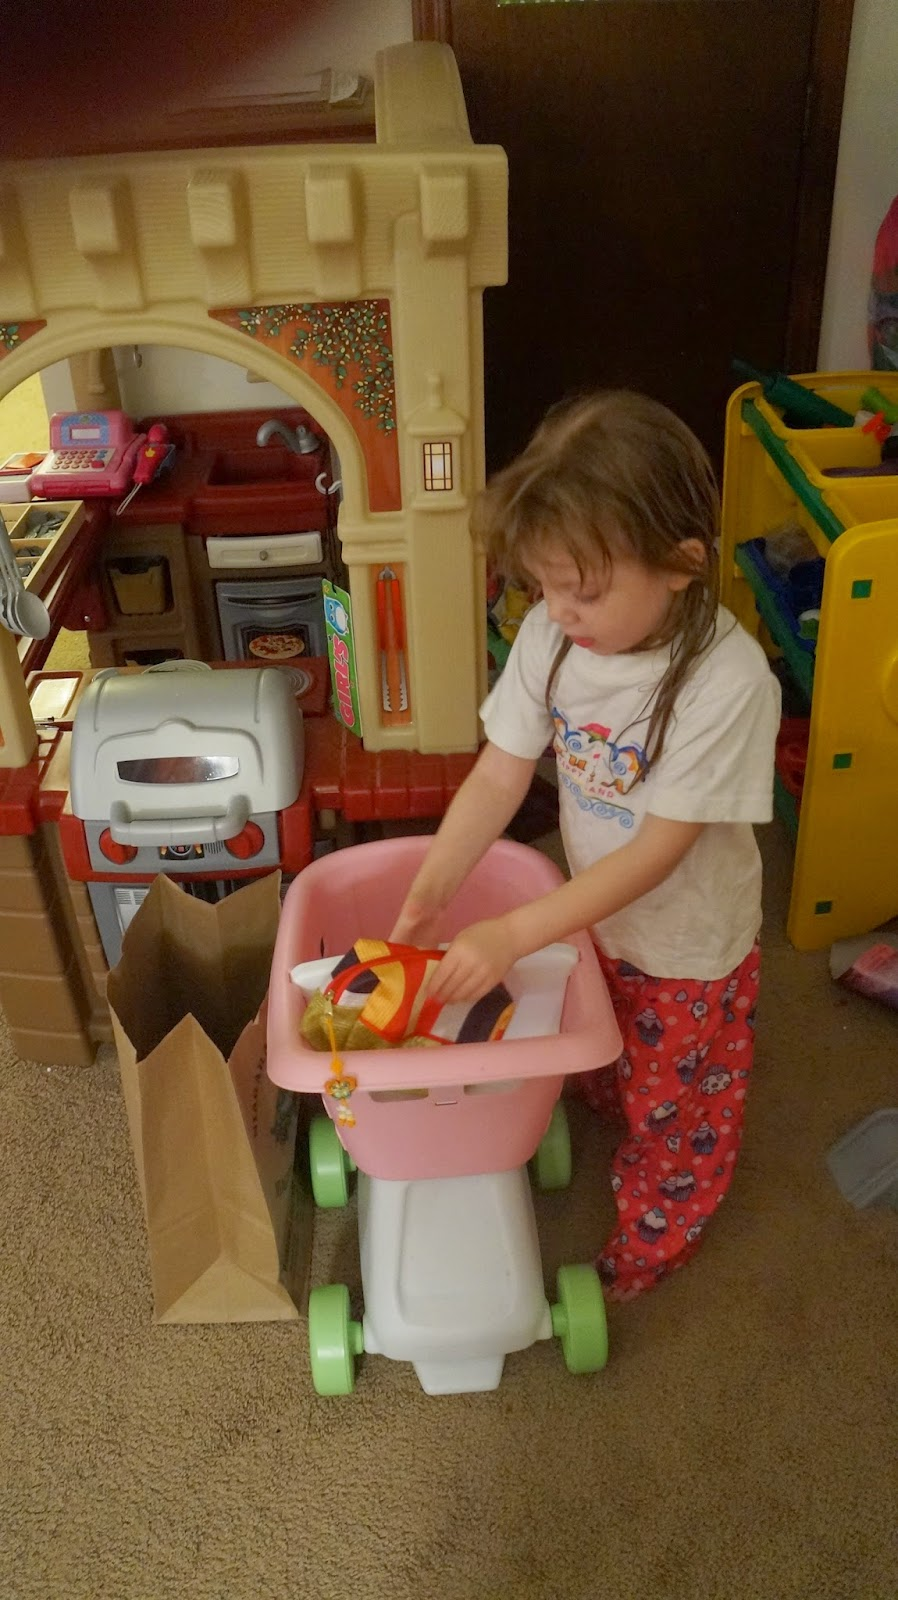 Buffalo NY Mom Blog Reviews Giveaways | The Dish on Parenting